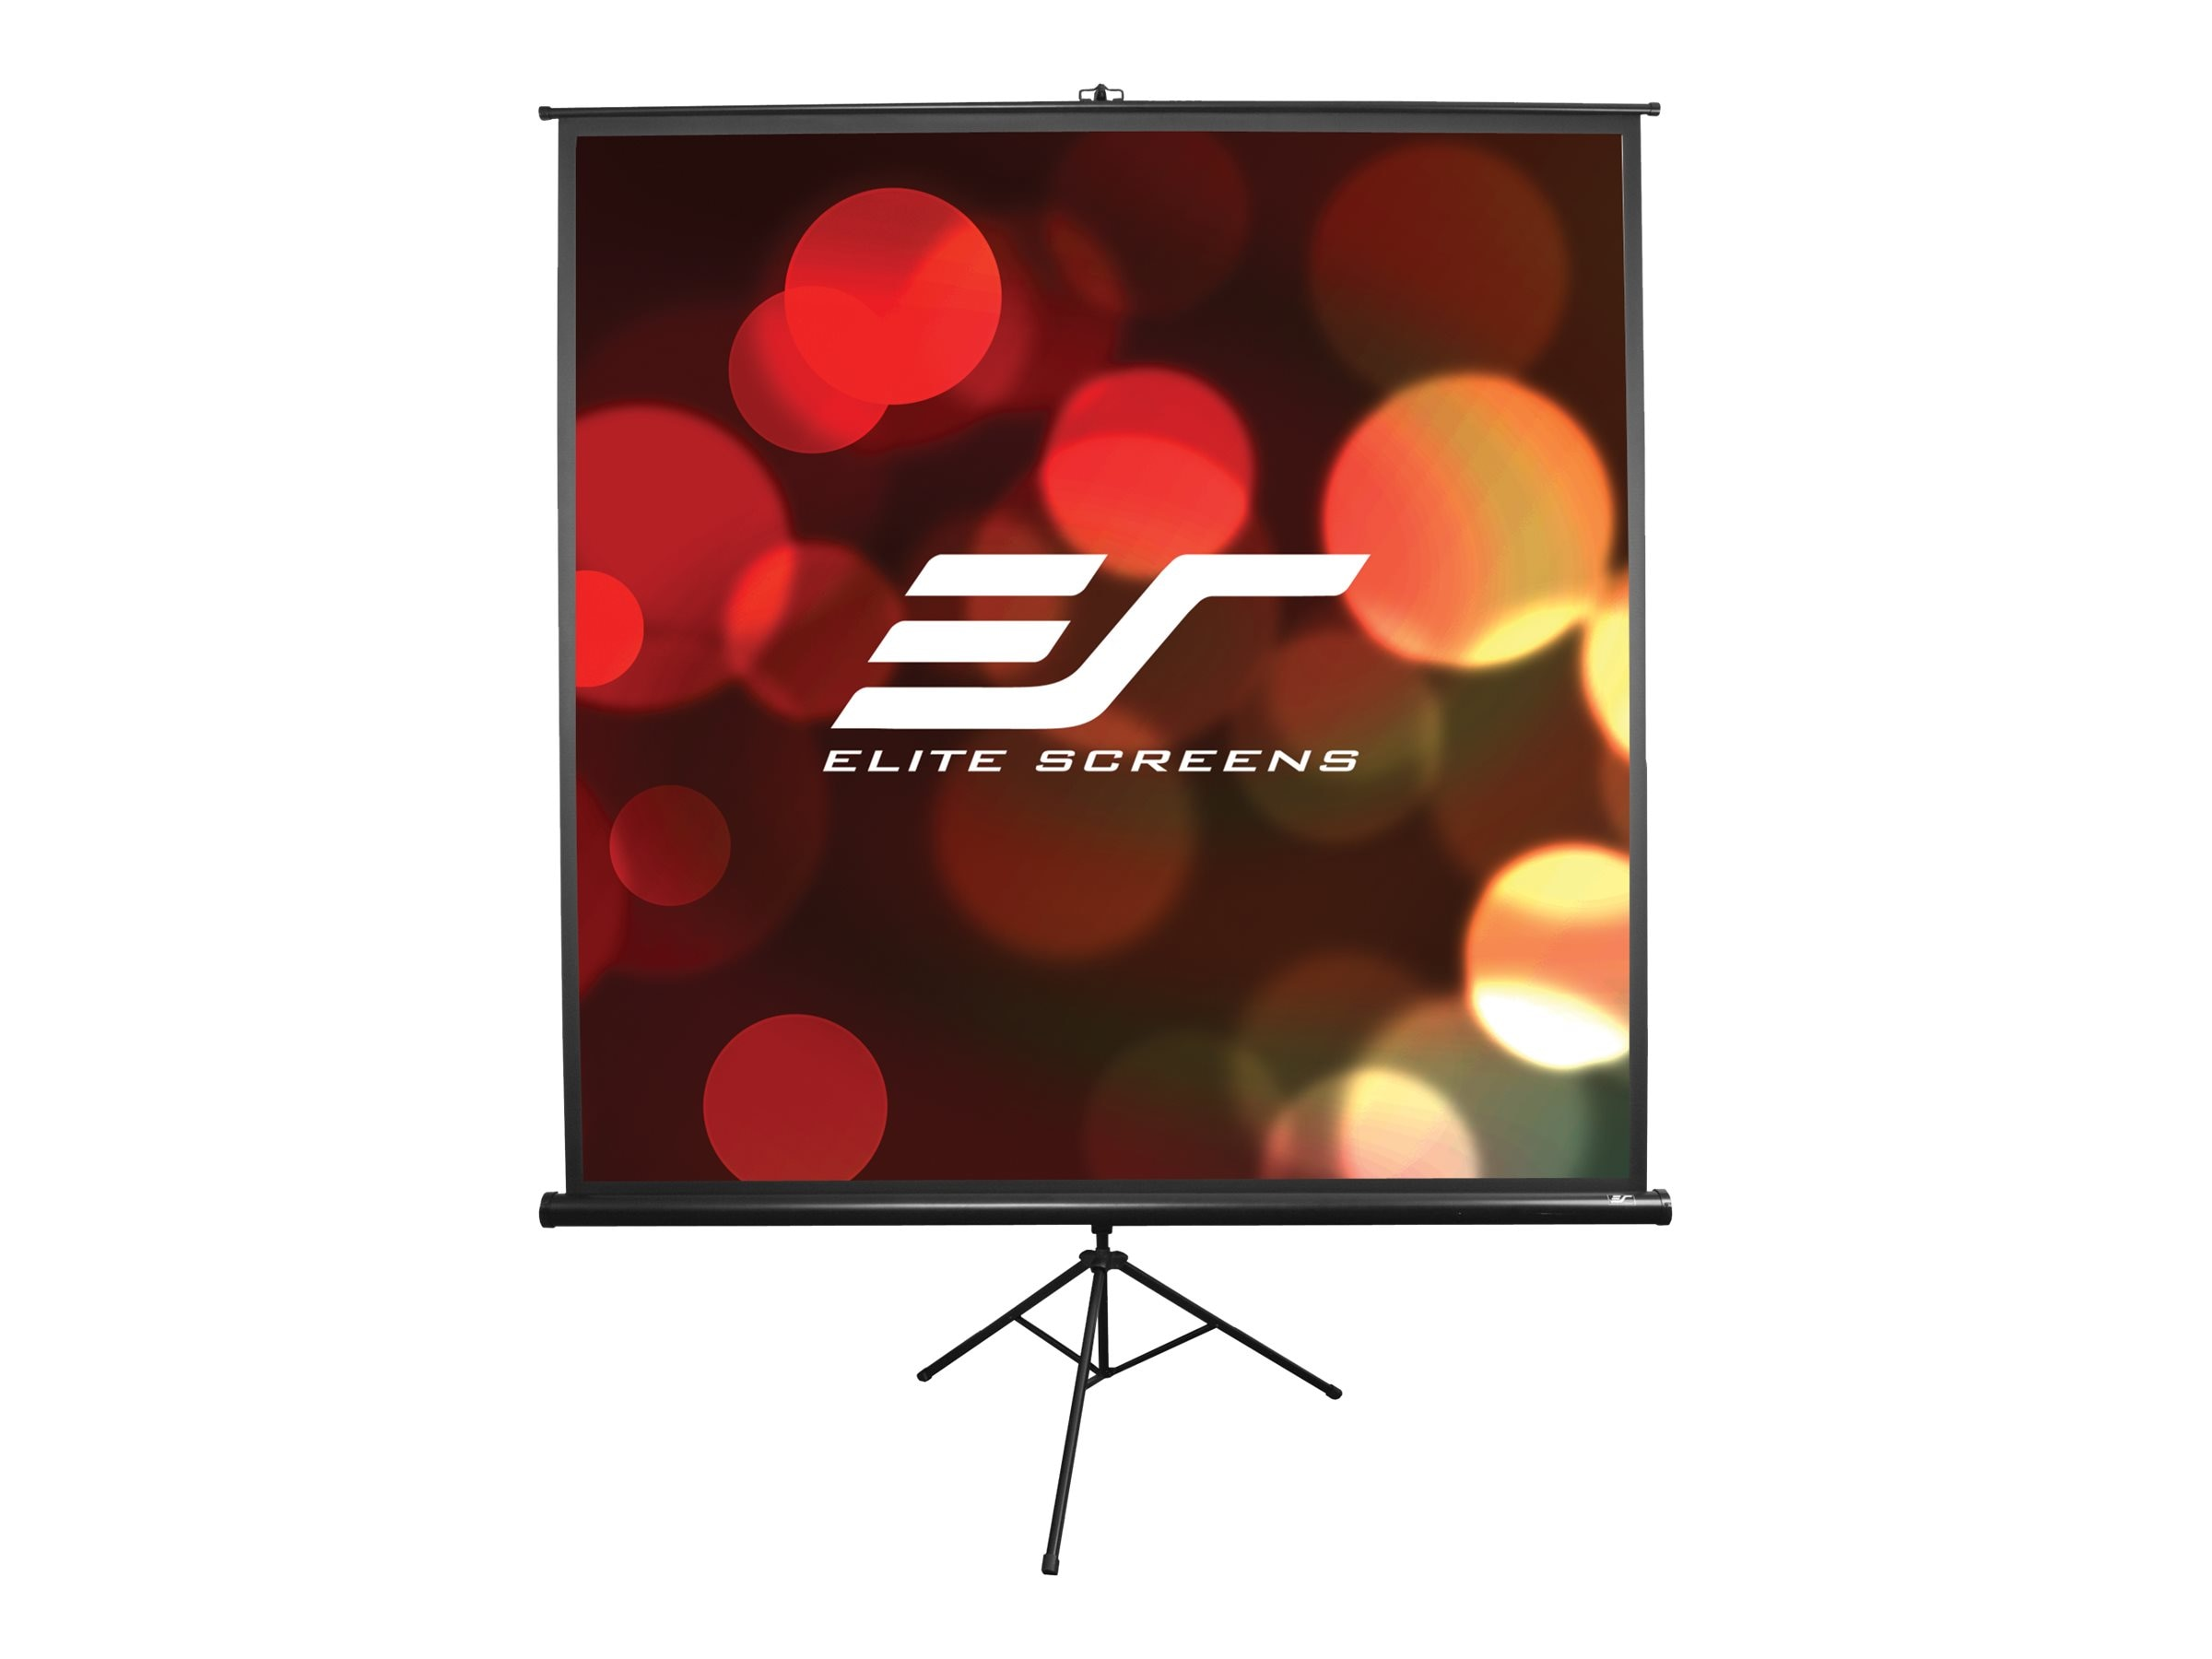 Elite Tripod Series Portable Matte White Projection Screen, 4:3, 100in, T100UWV1, 6058043, Projector Screens